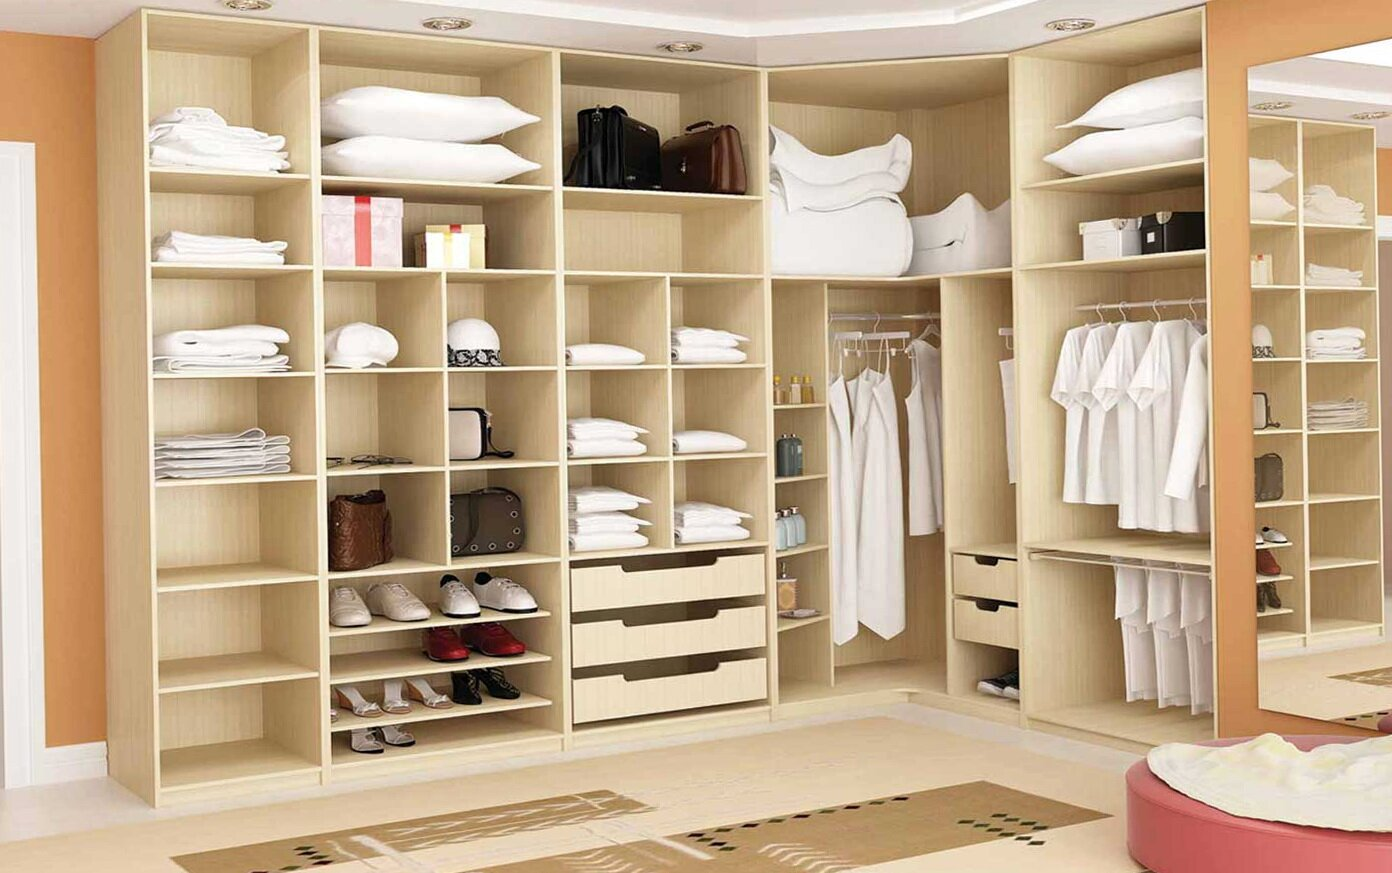 Closet interesting clothes storage design with closet design tool - Free closet design software online ...